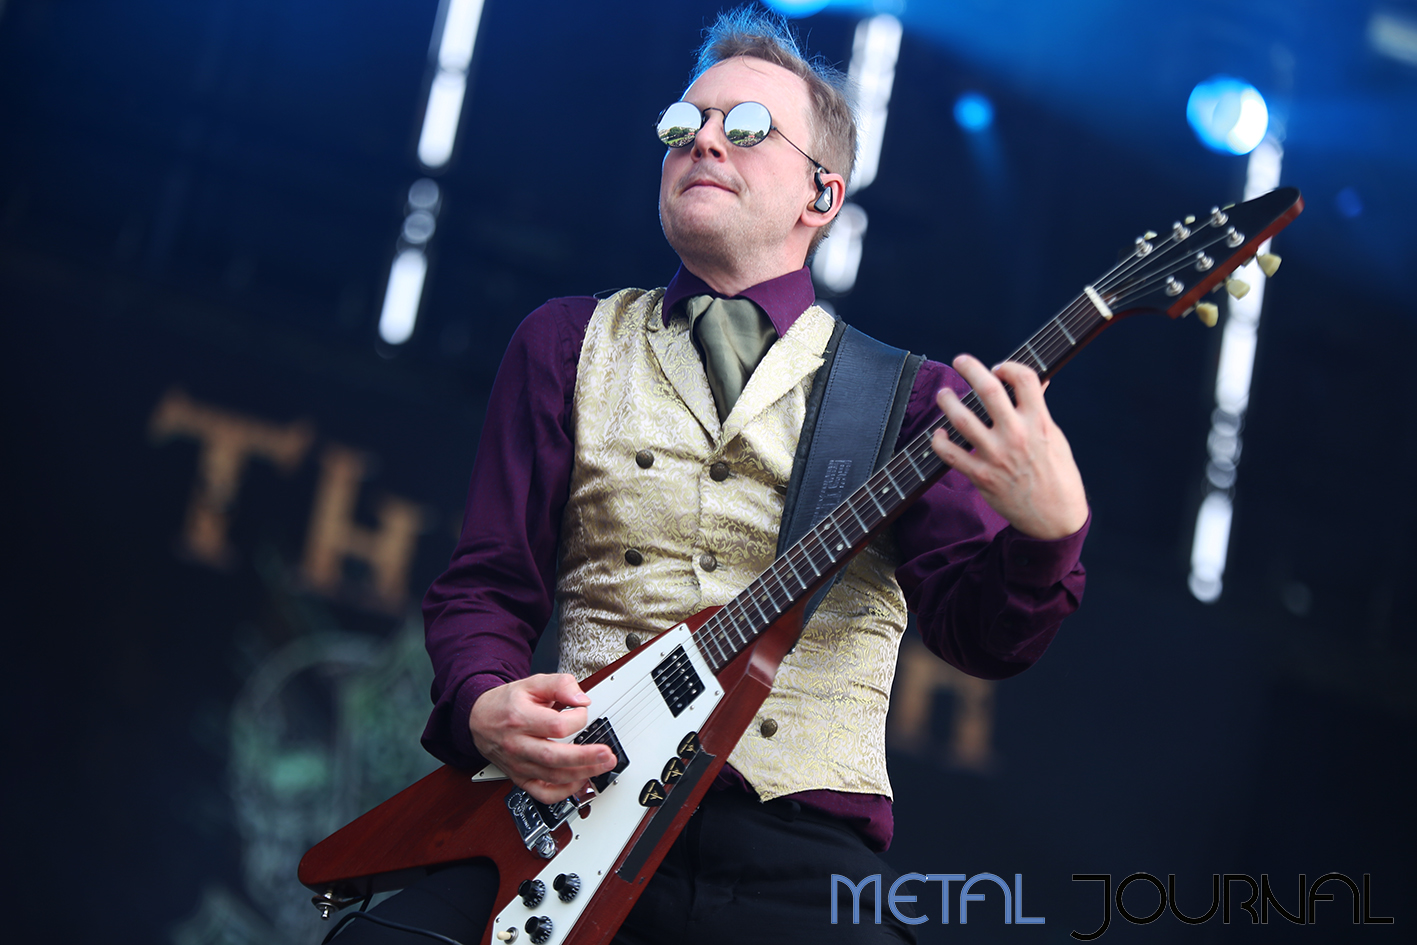 therion - metal journal rock fest barcelona 2019 pic 9